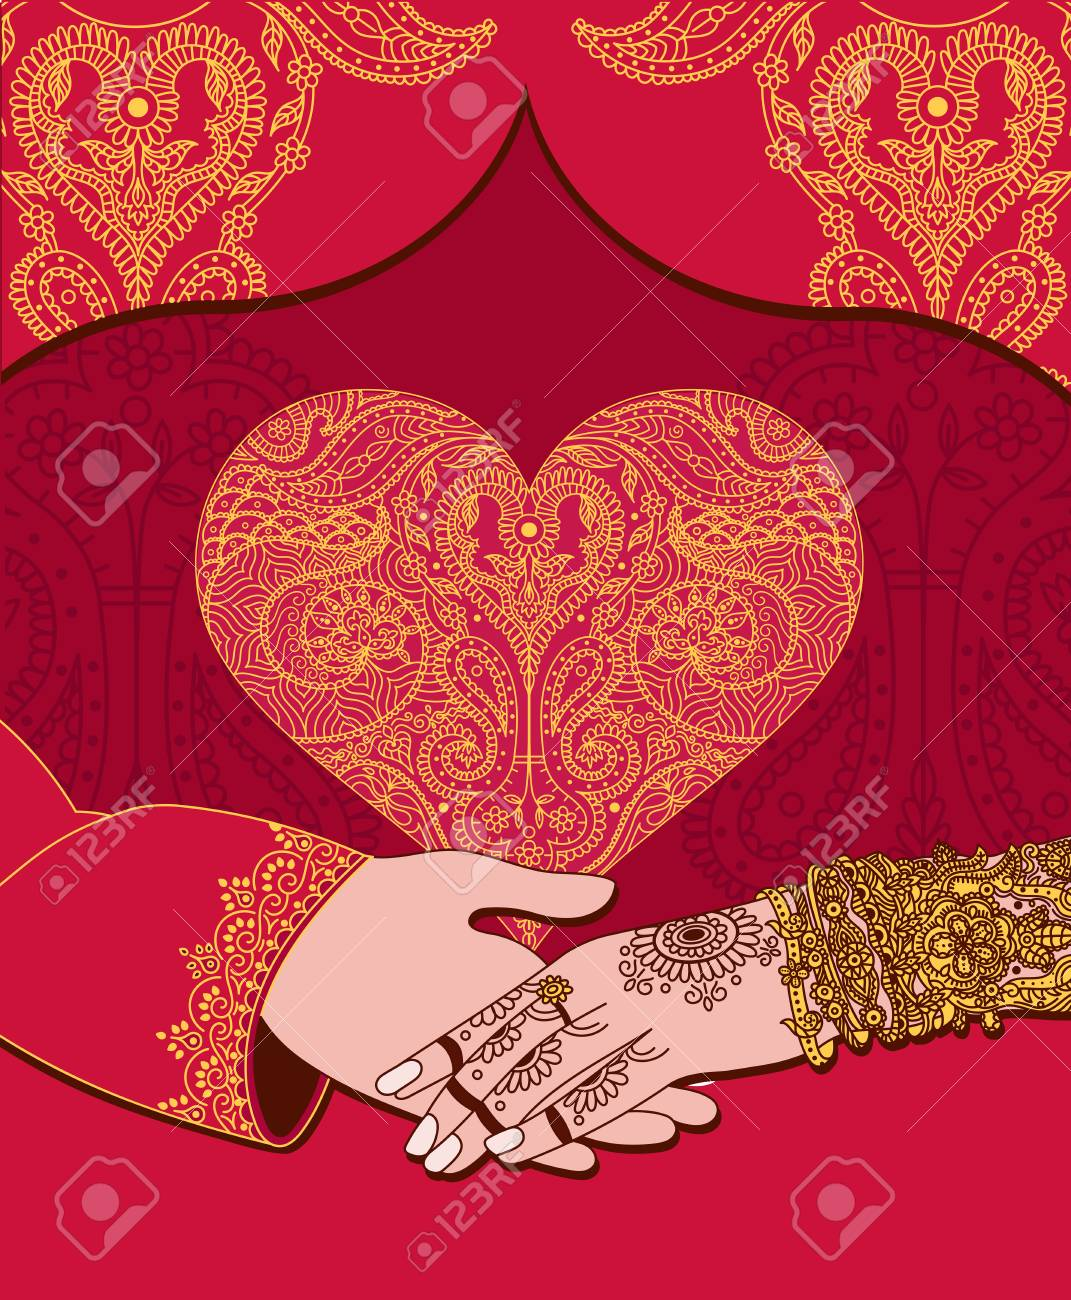 Wedding Indian Invitation Card With Golden Heart India Marriage